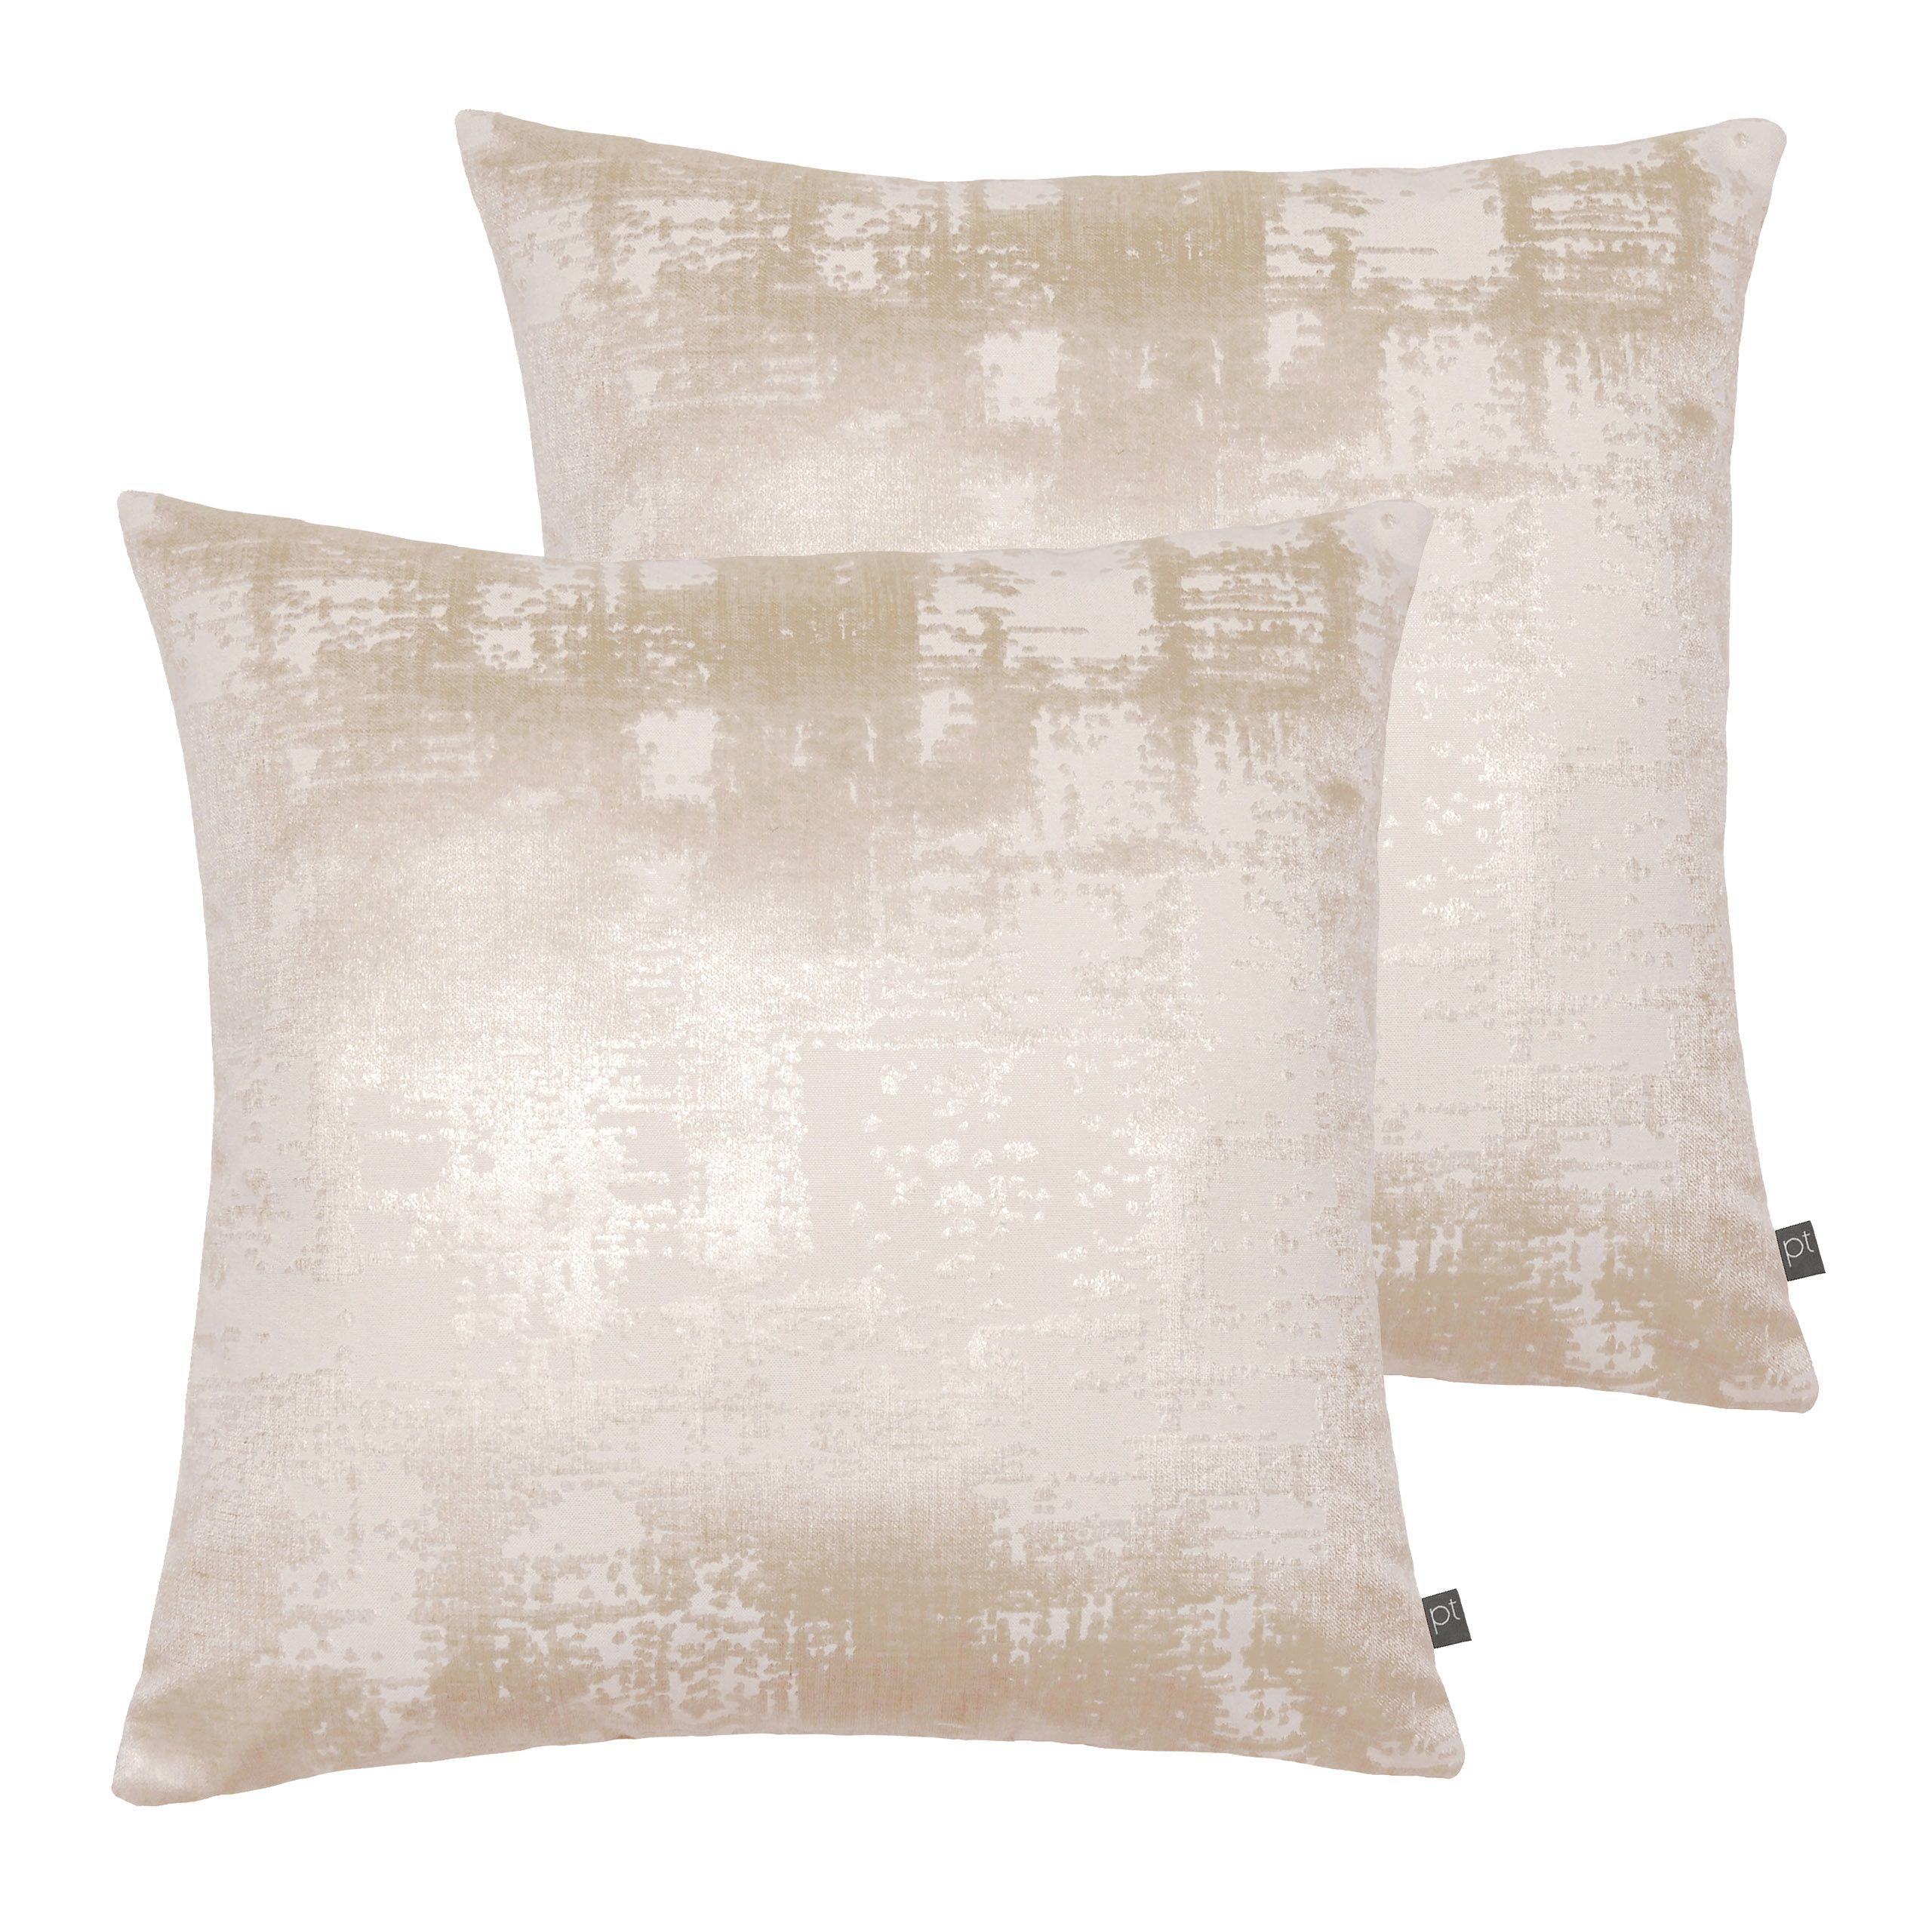 Aphrodite Cushions (Twin Pack)